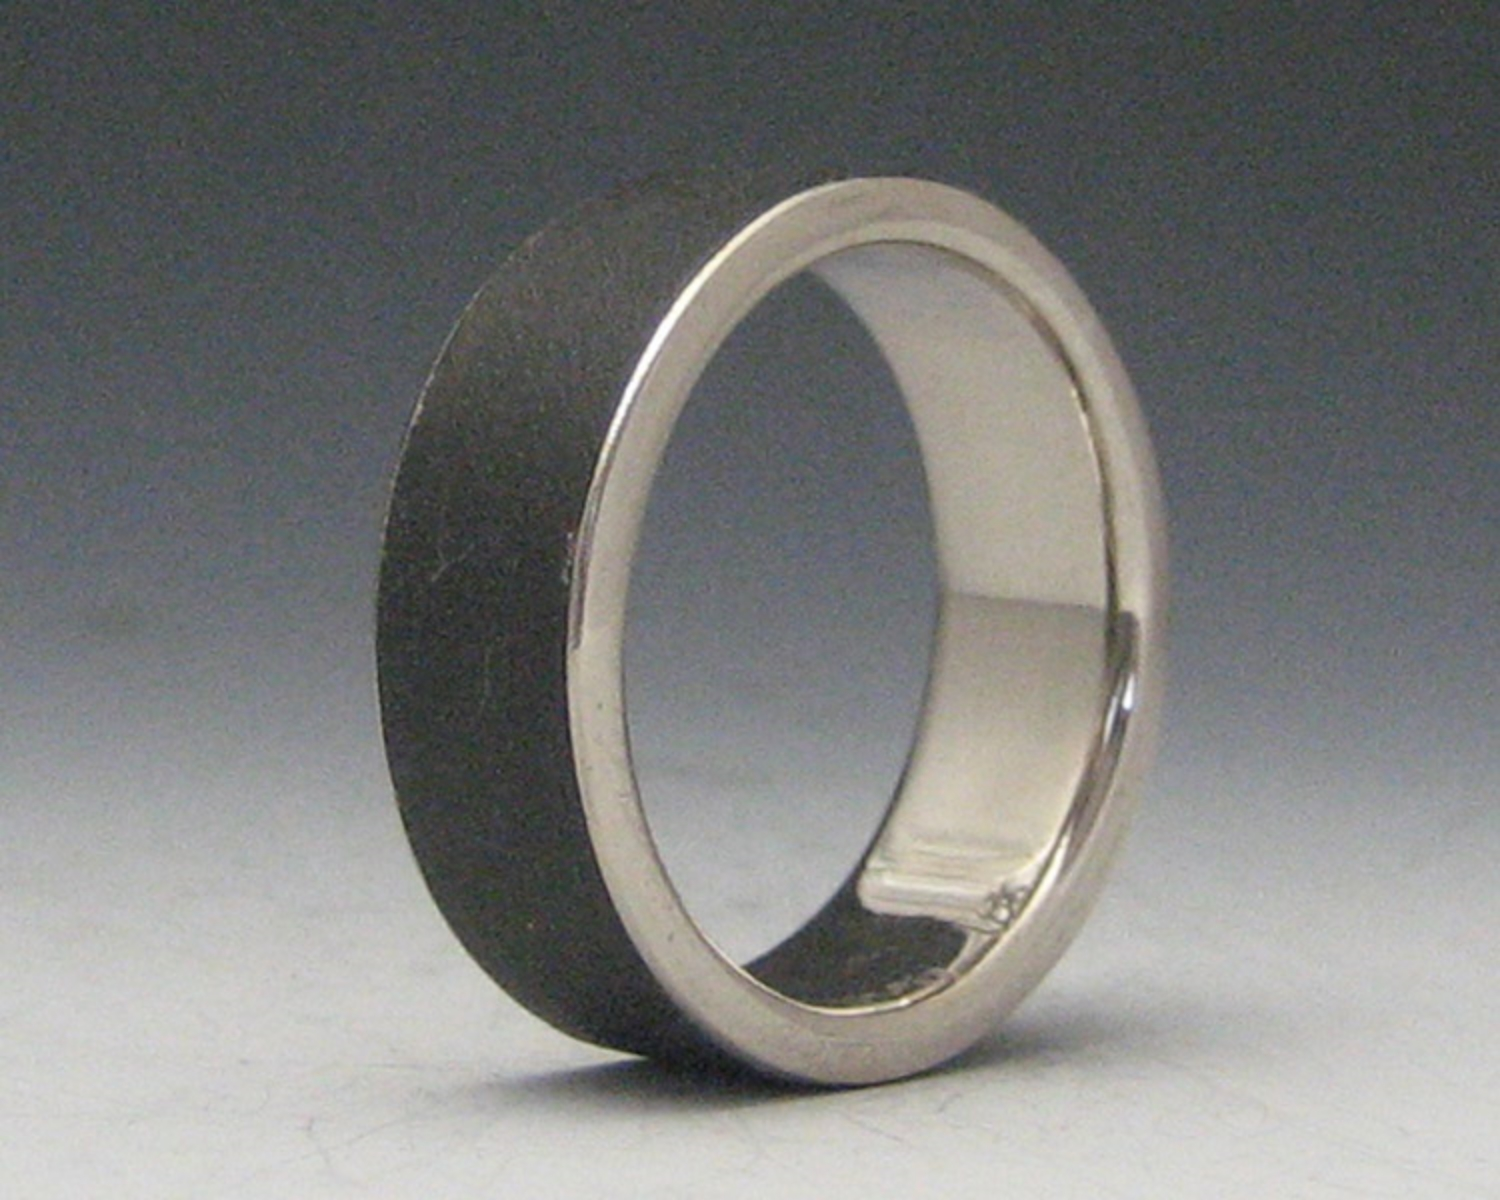 Plain Steel Band with 18K White Gold Liner